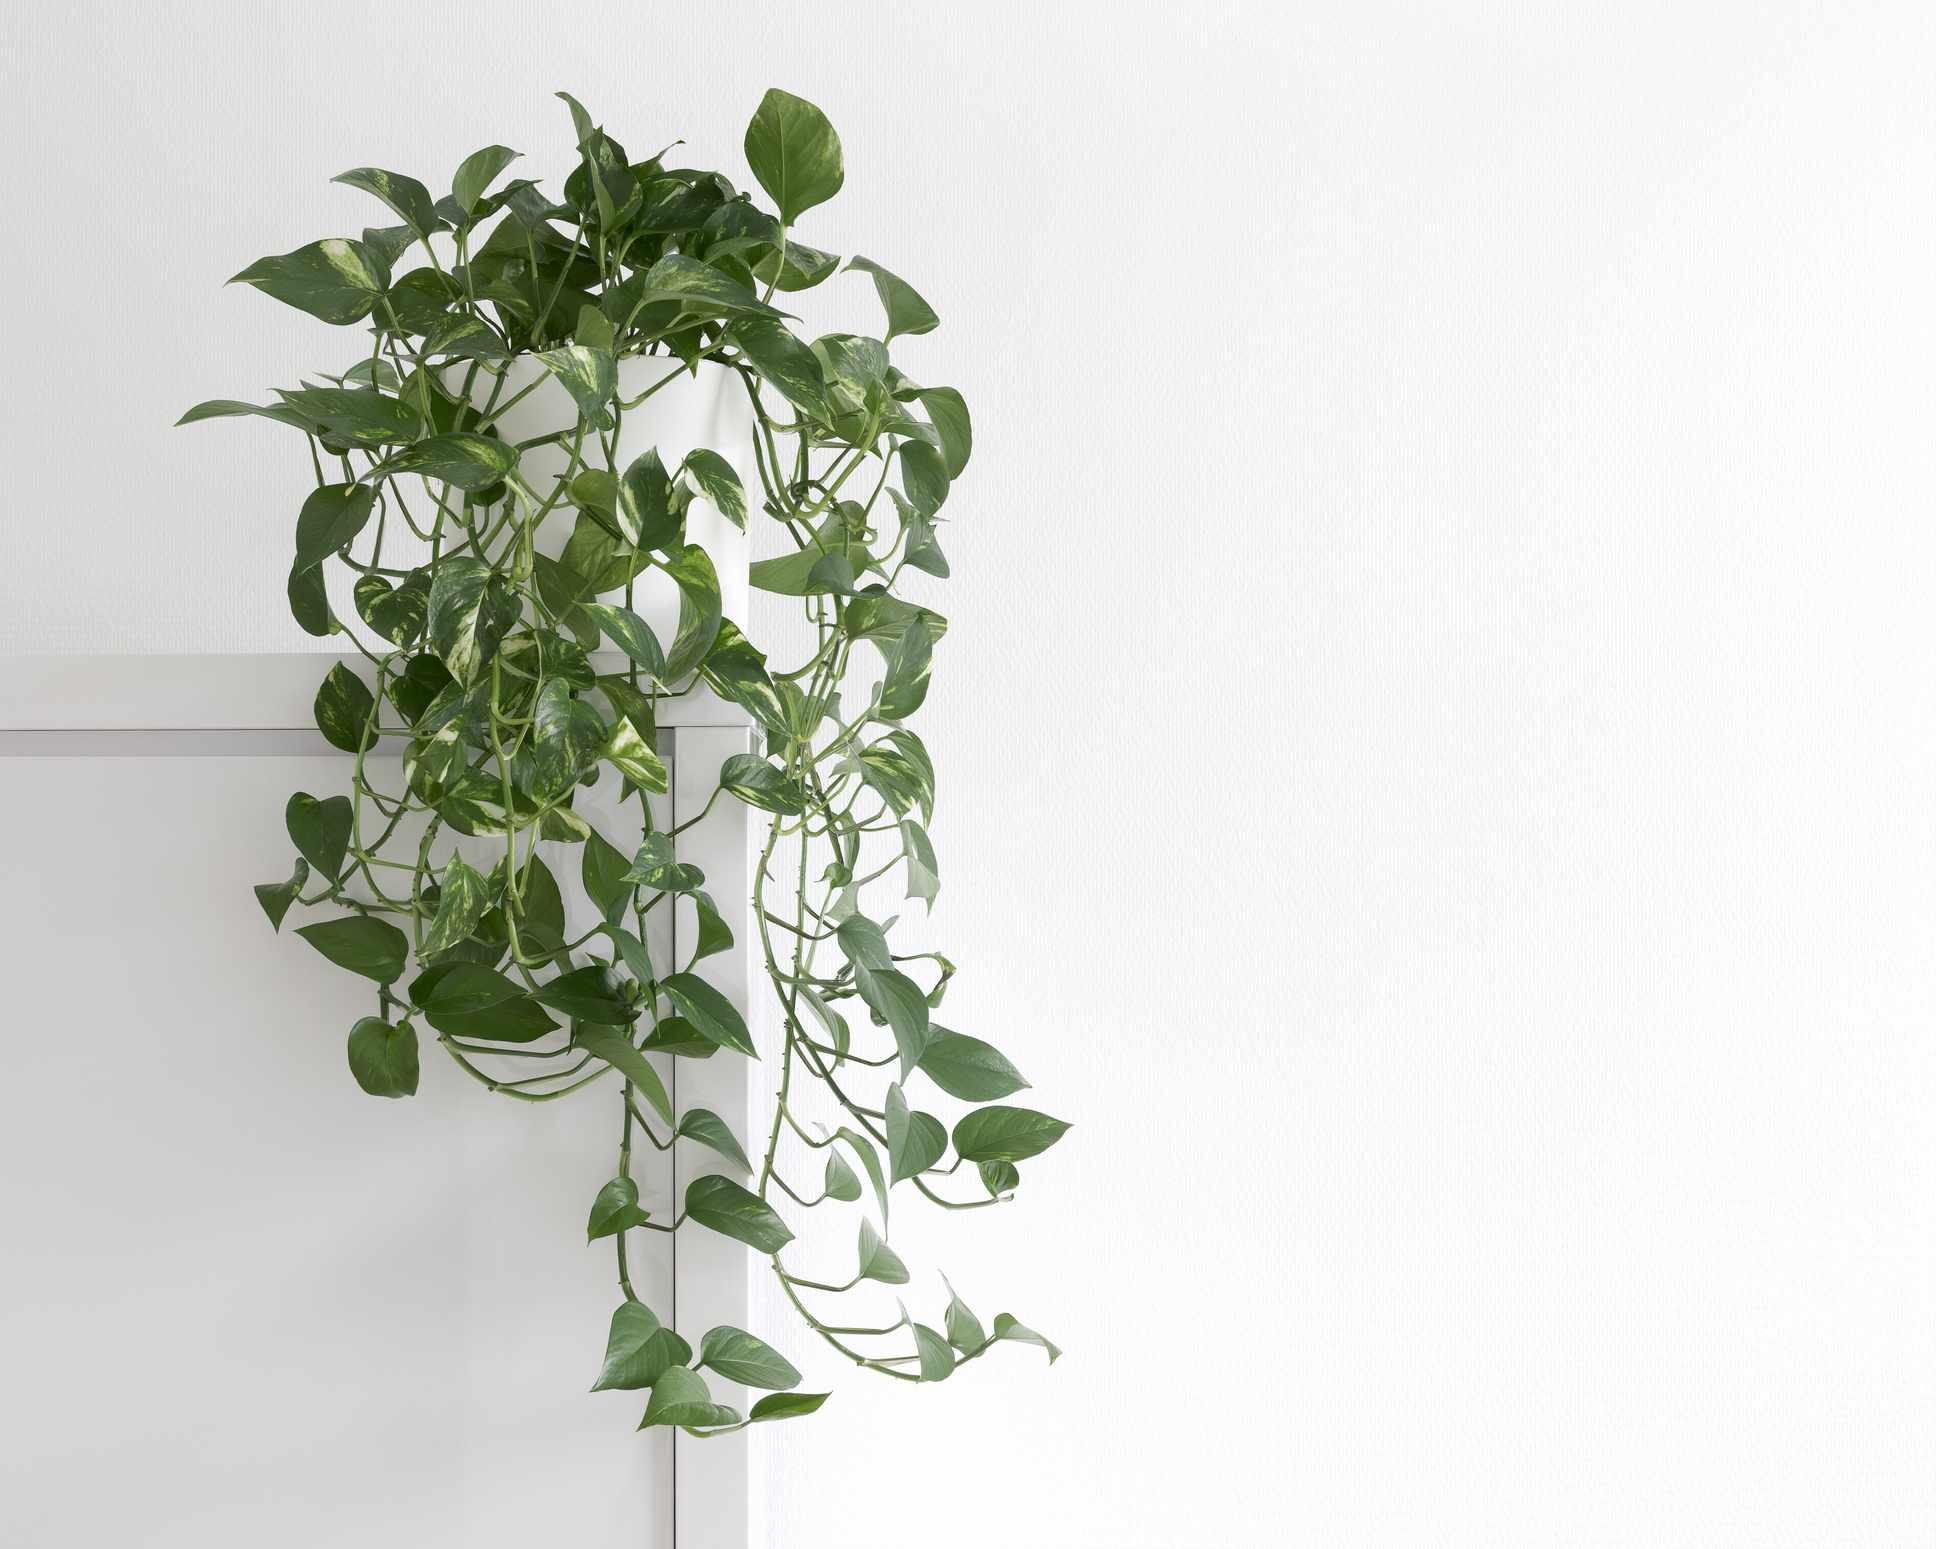 pothos plant trailing from door frame